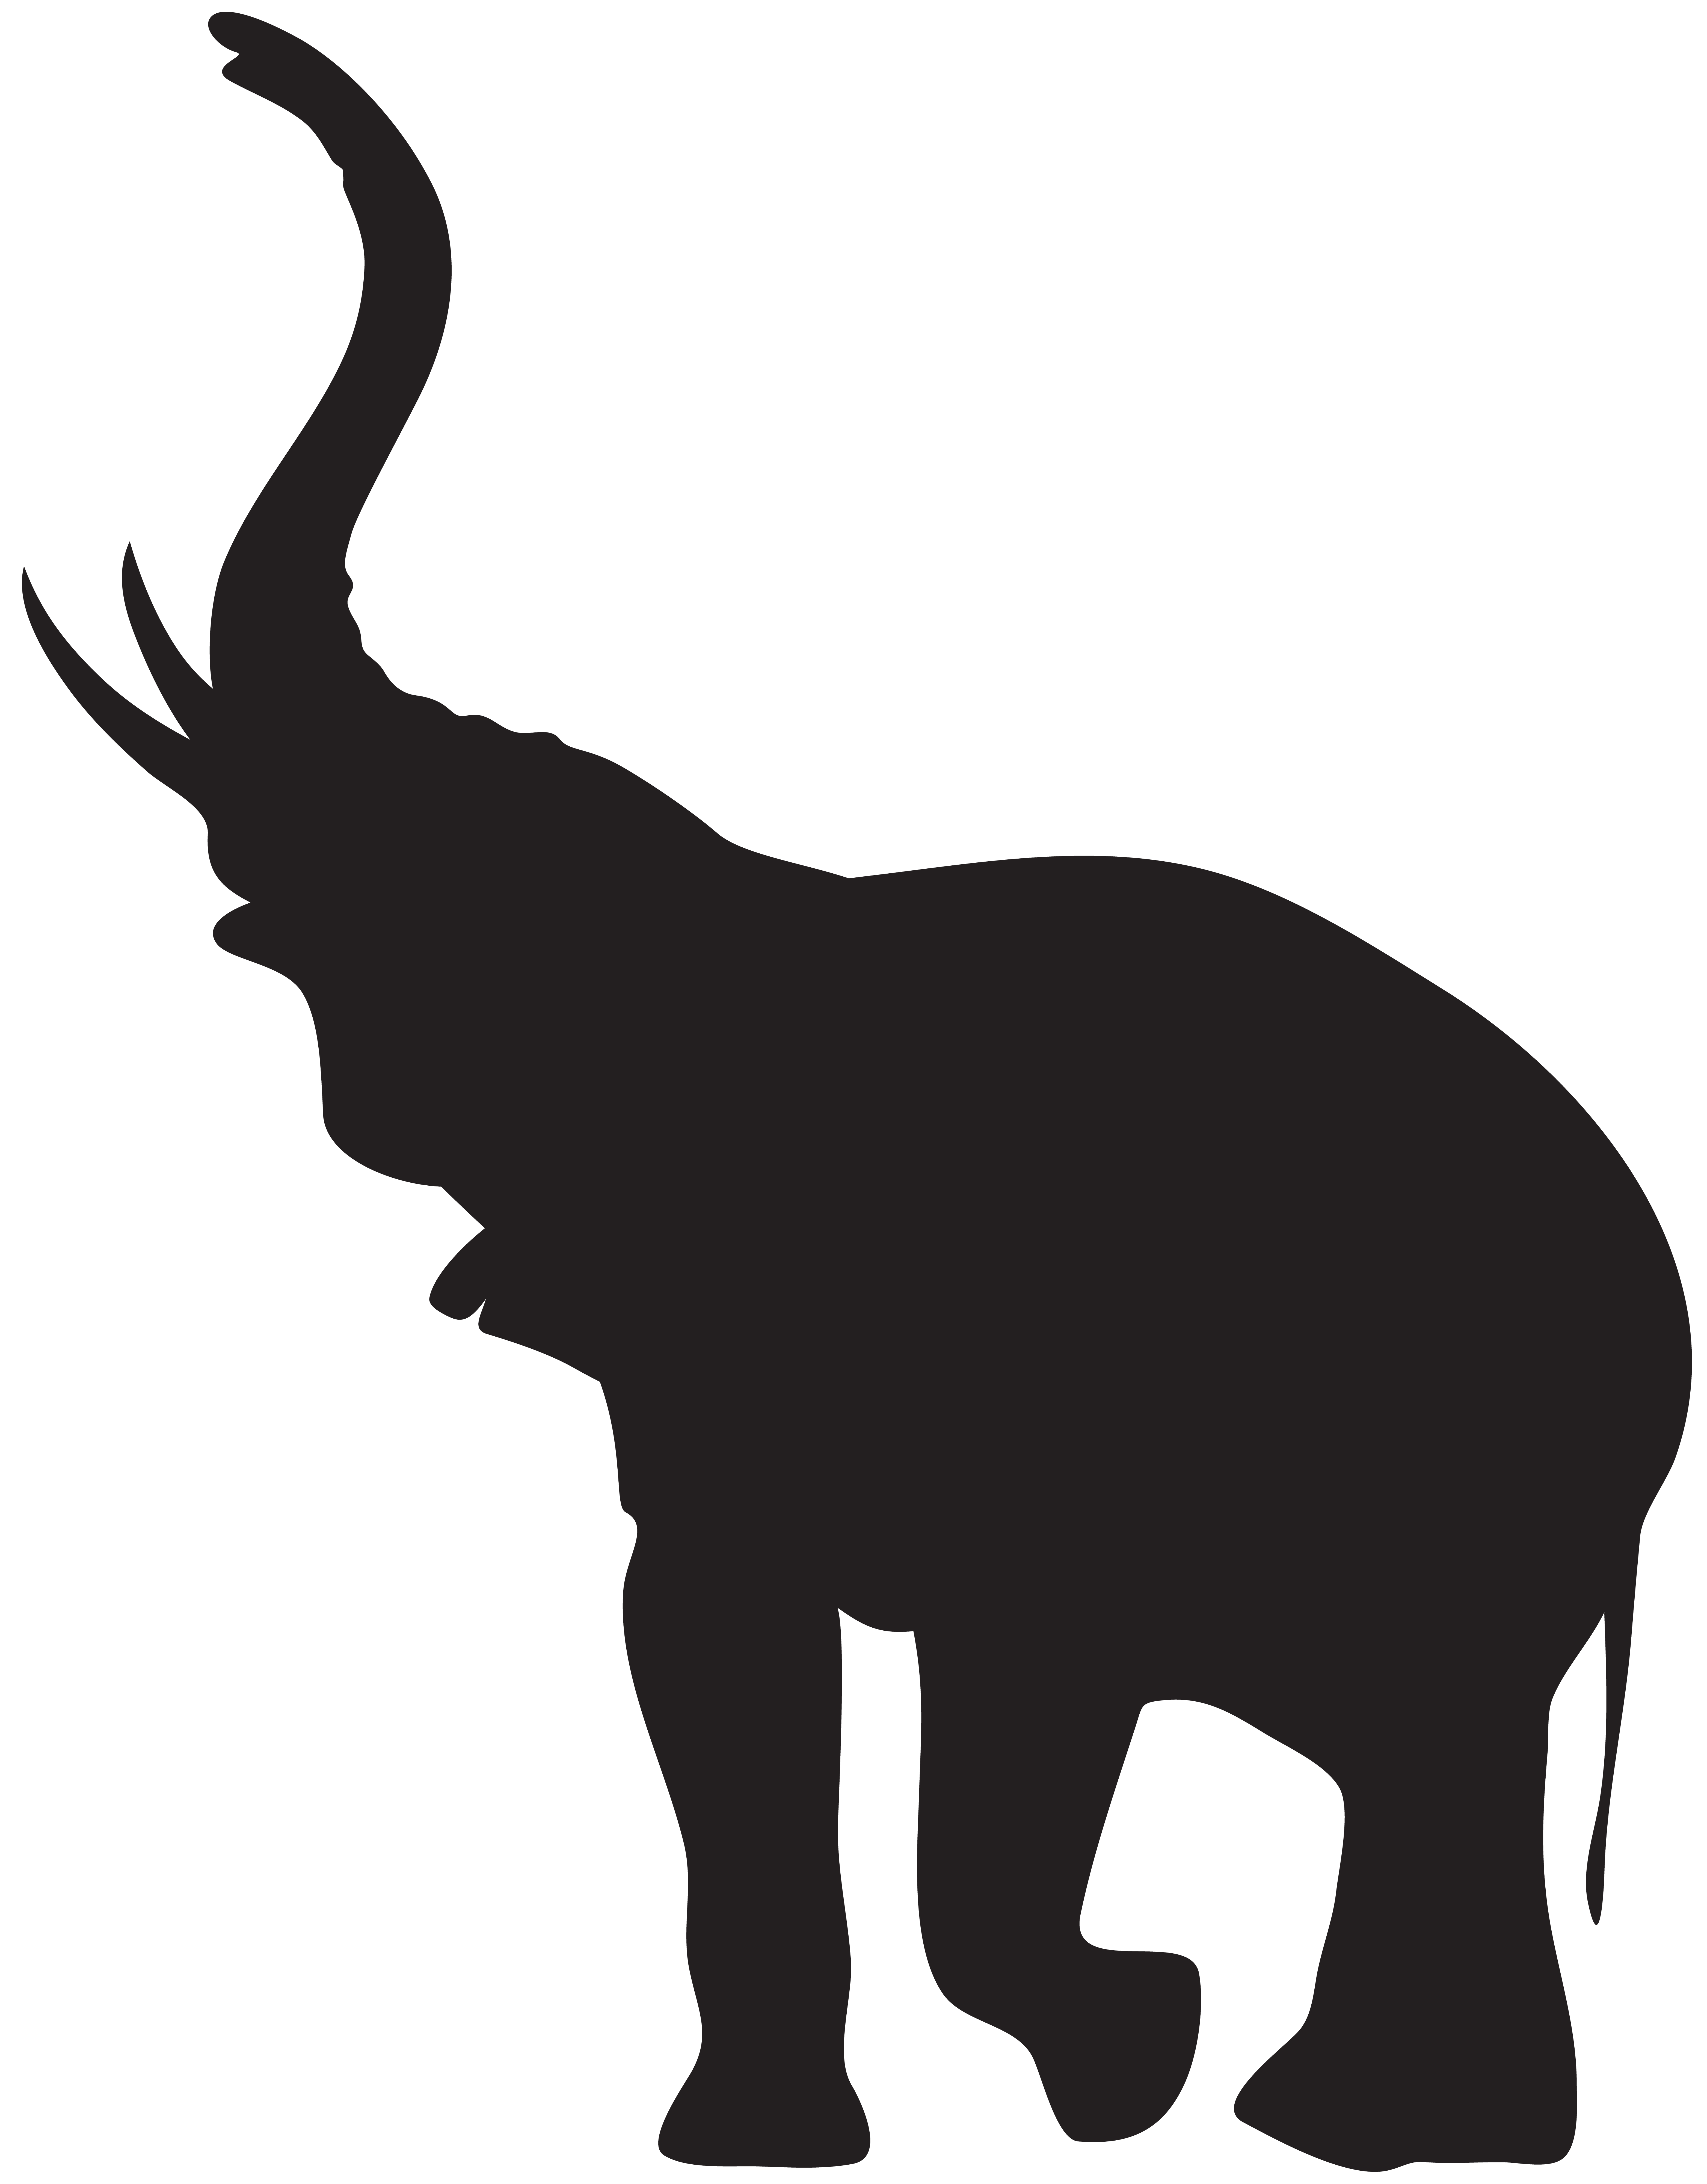 Clipart heart elephant. Silhouette at getdrawings com